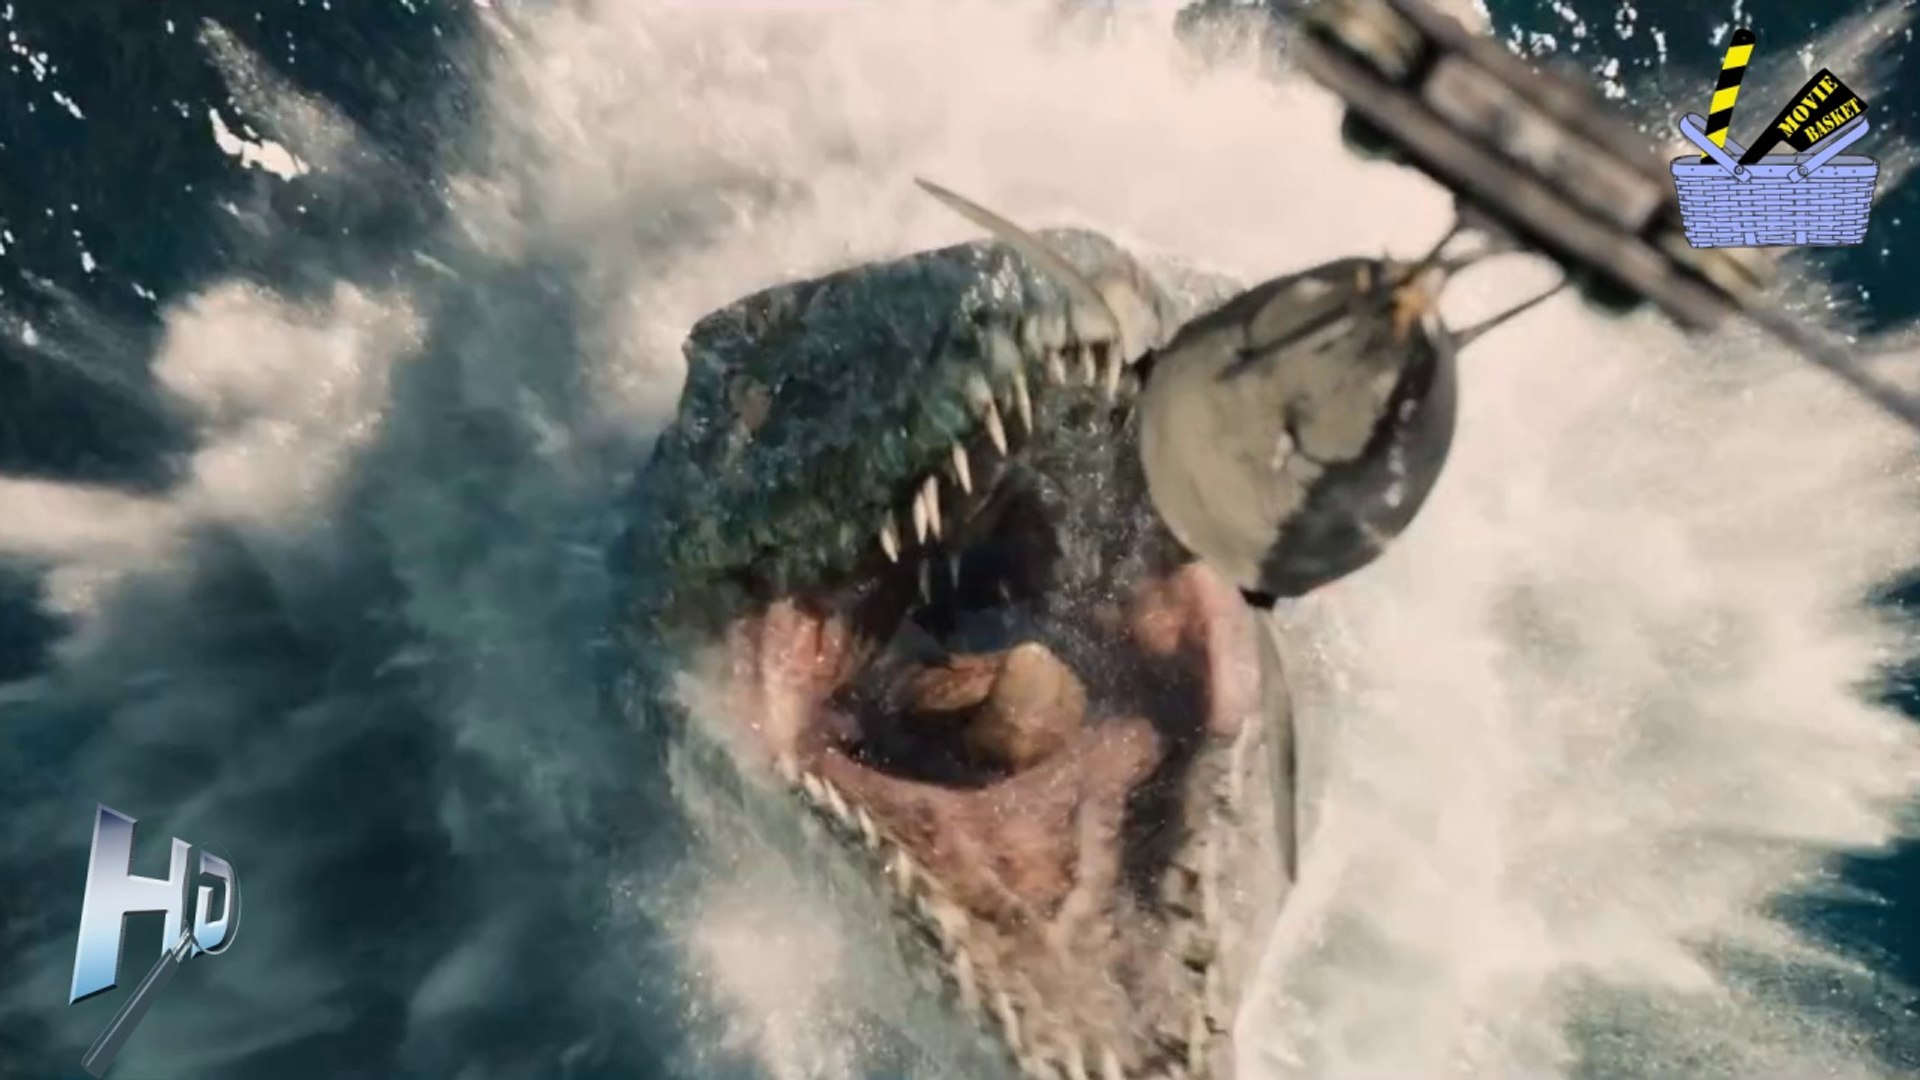 Jurassic World::Official Trailer | Untold story of Jurassic World | Promo Video